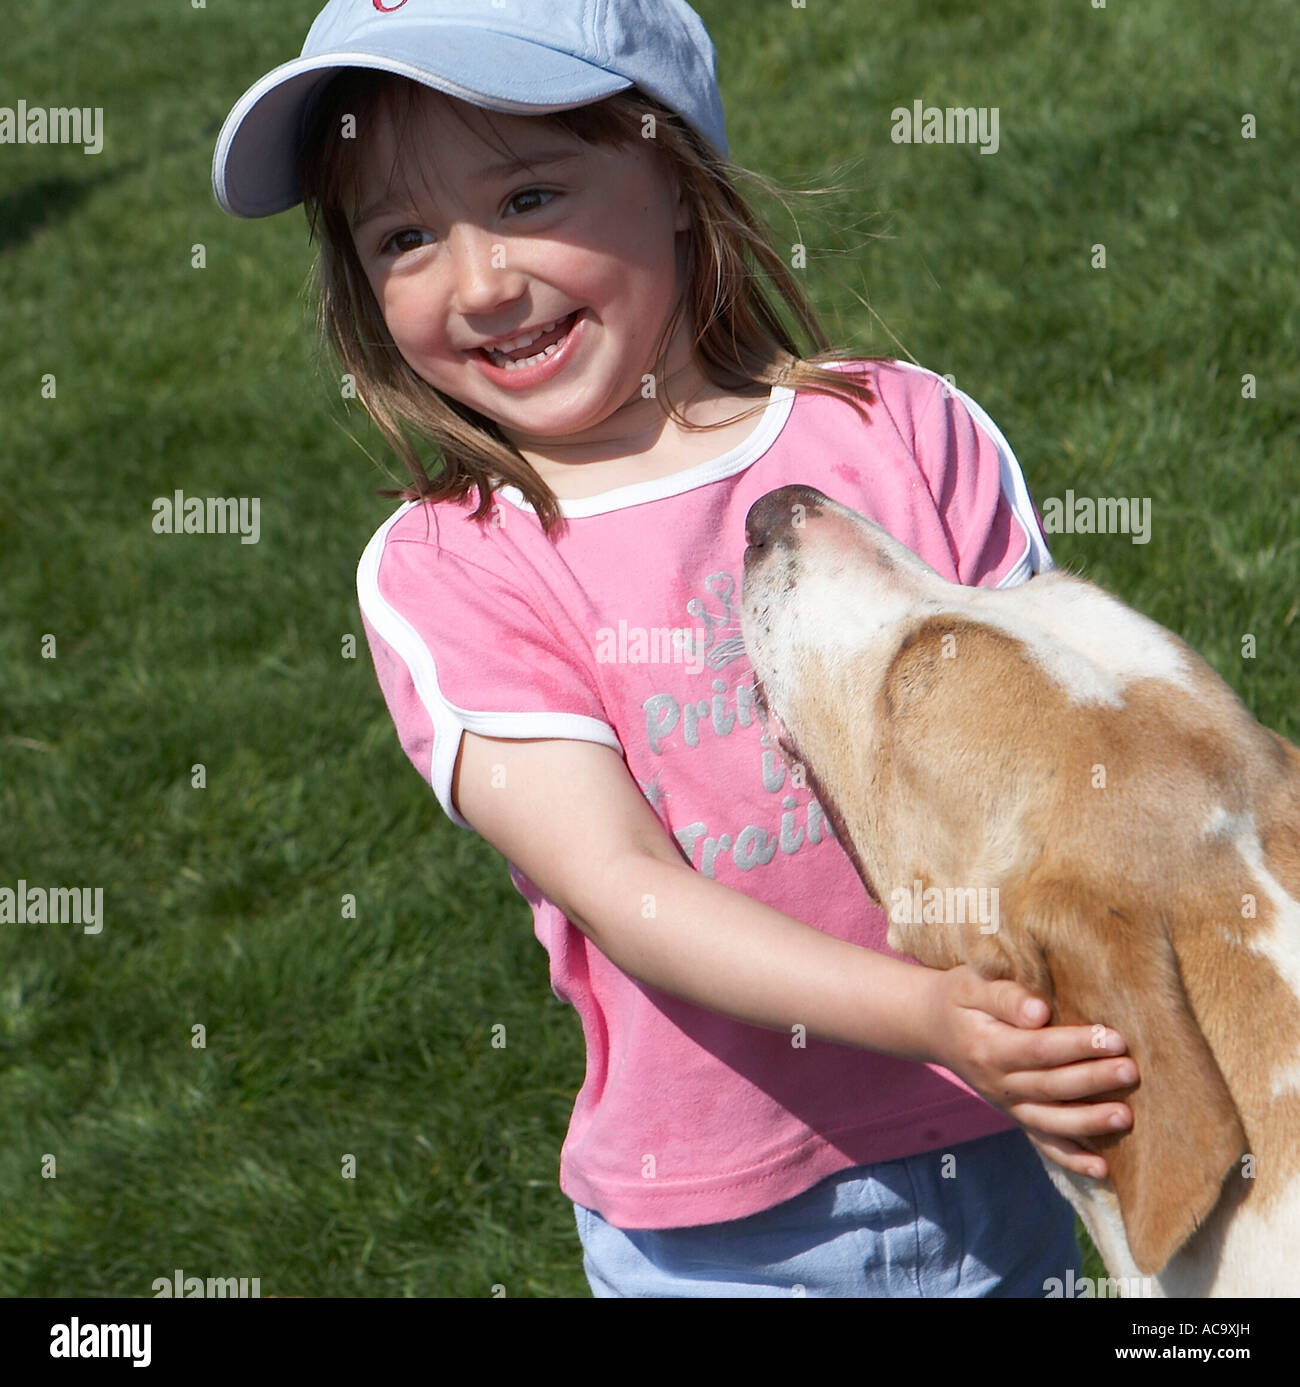 A new best friend - Stock Image